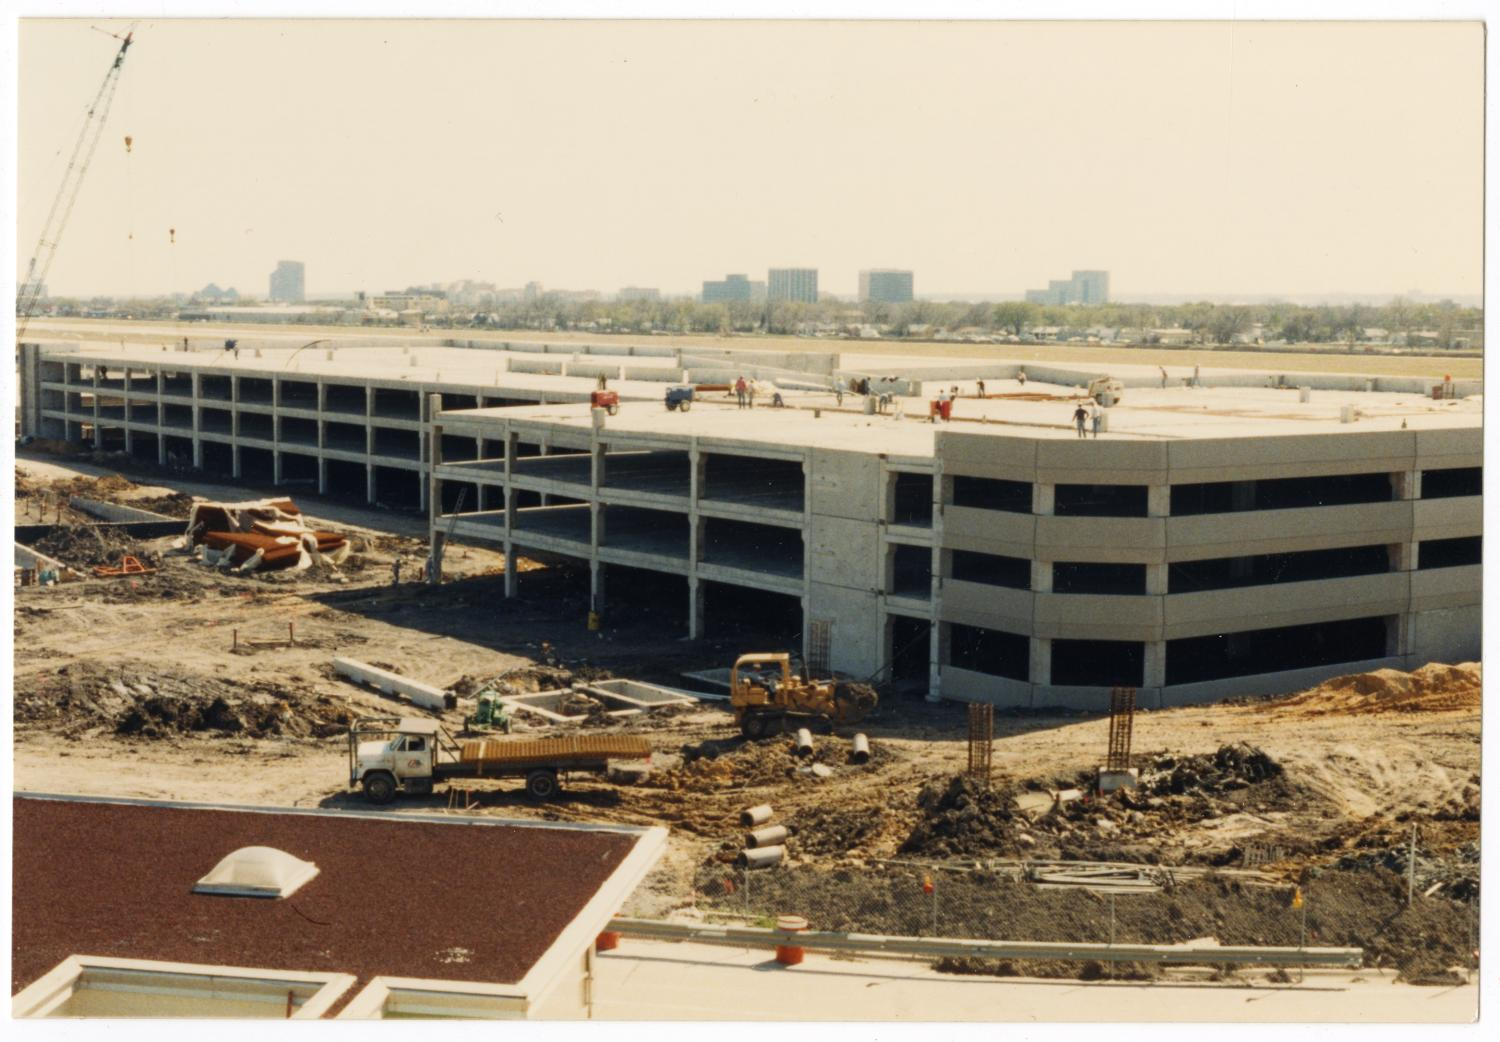 [Dallas Love Field Airport : Construction Site]                                                                                                      [Sequence #]: 1 of 2